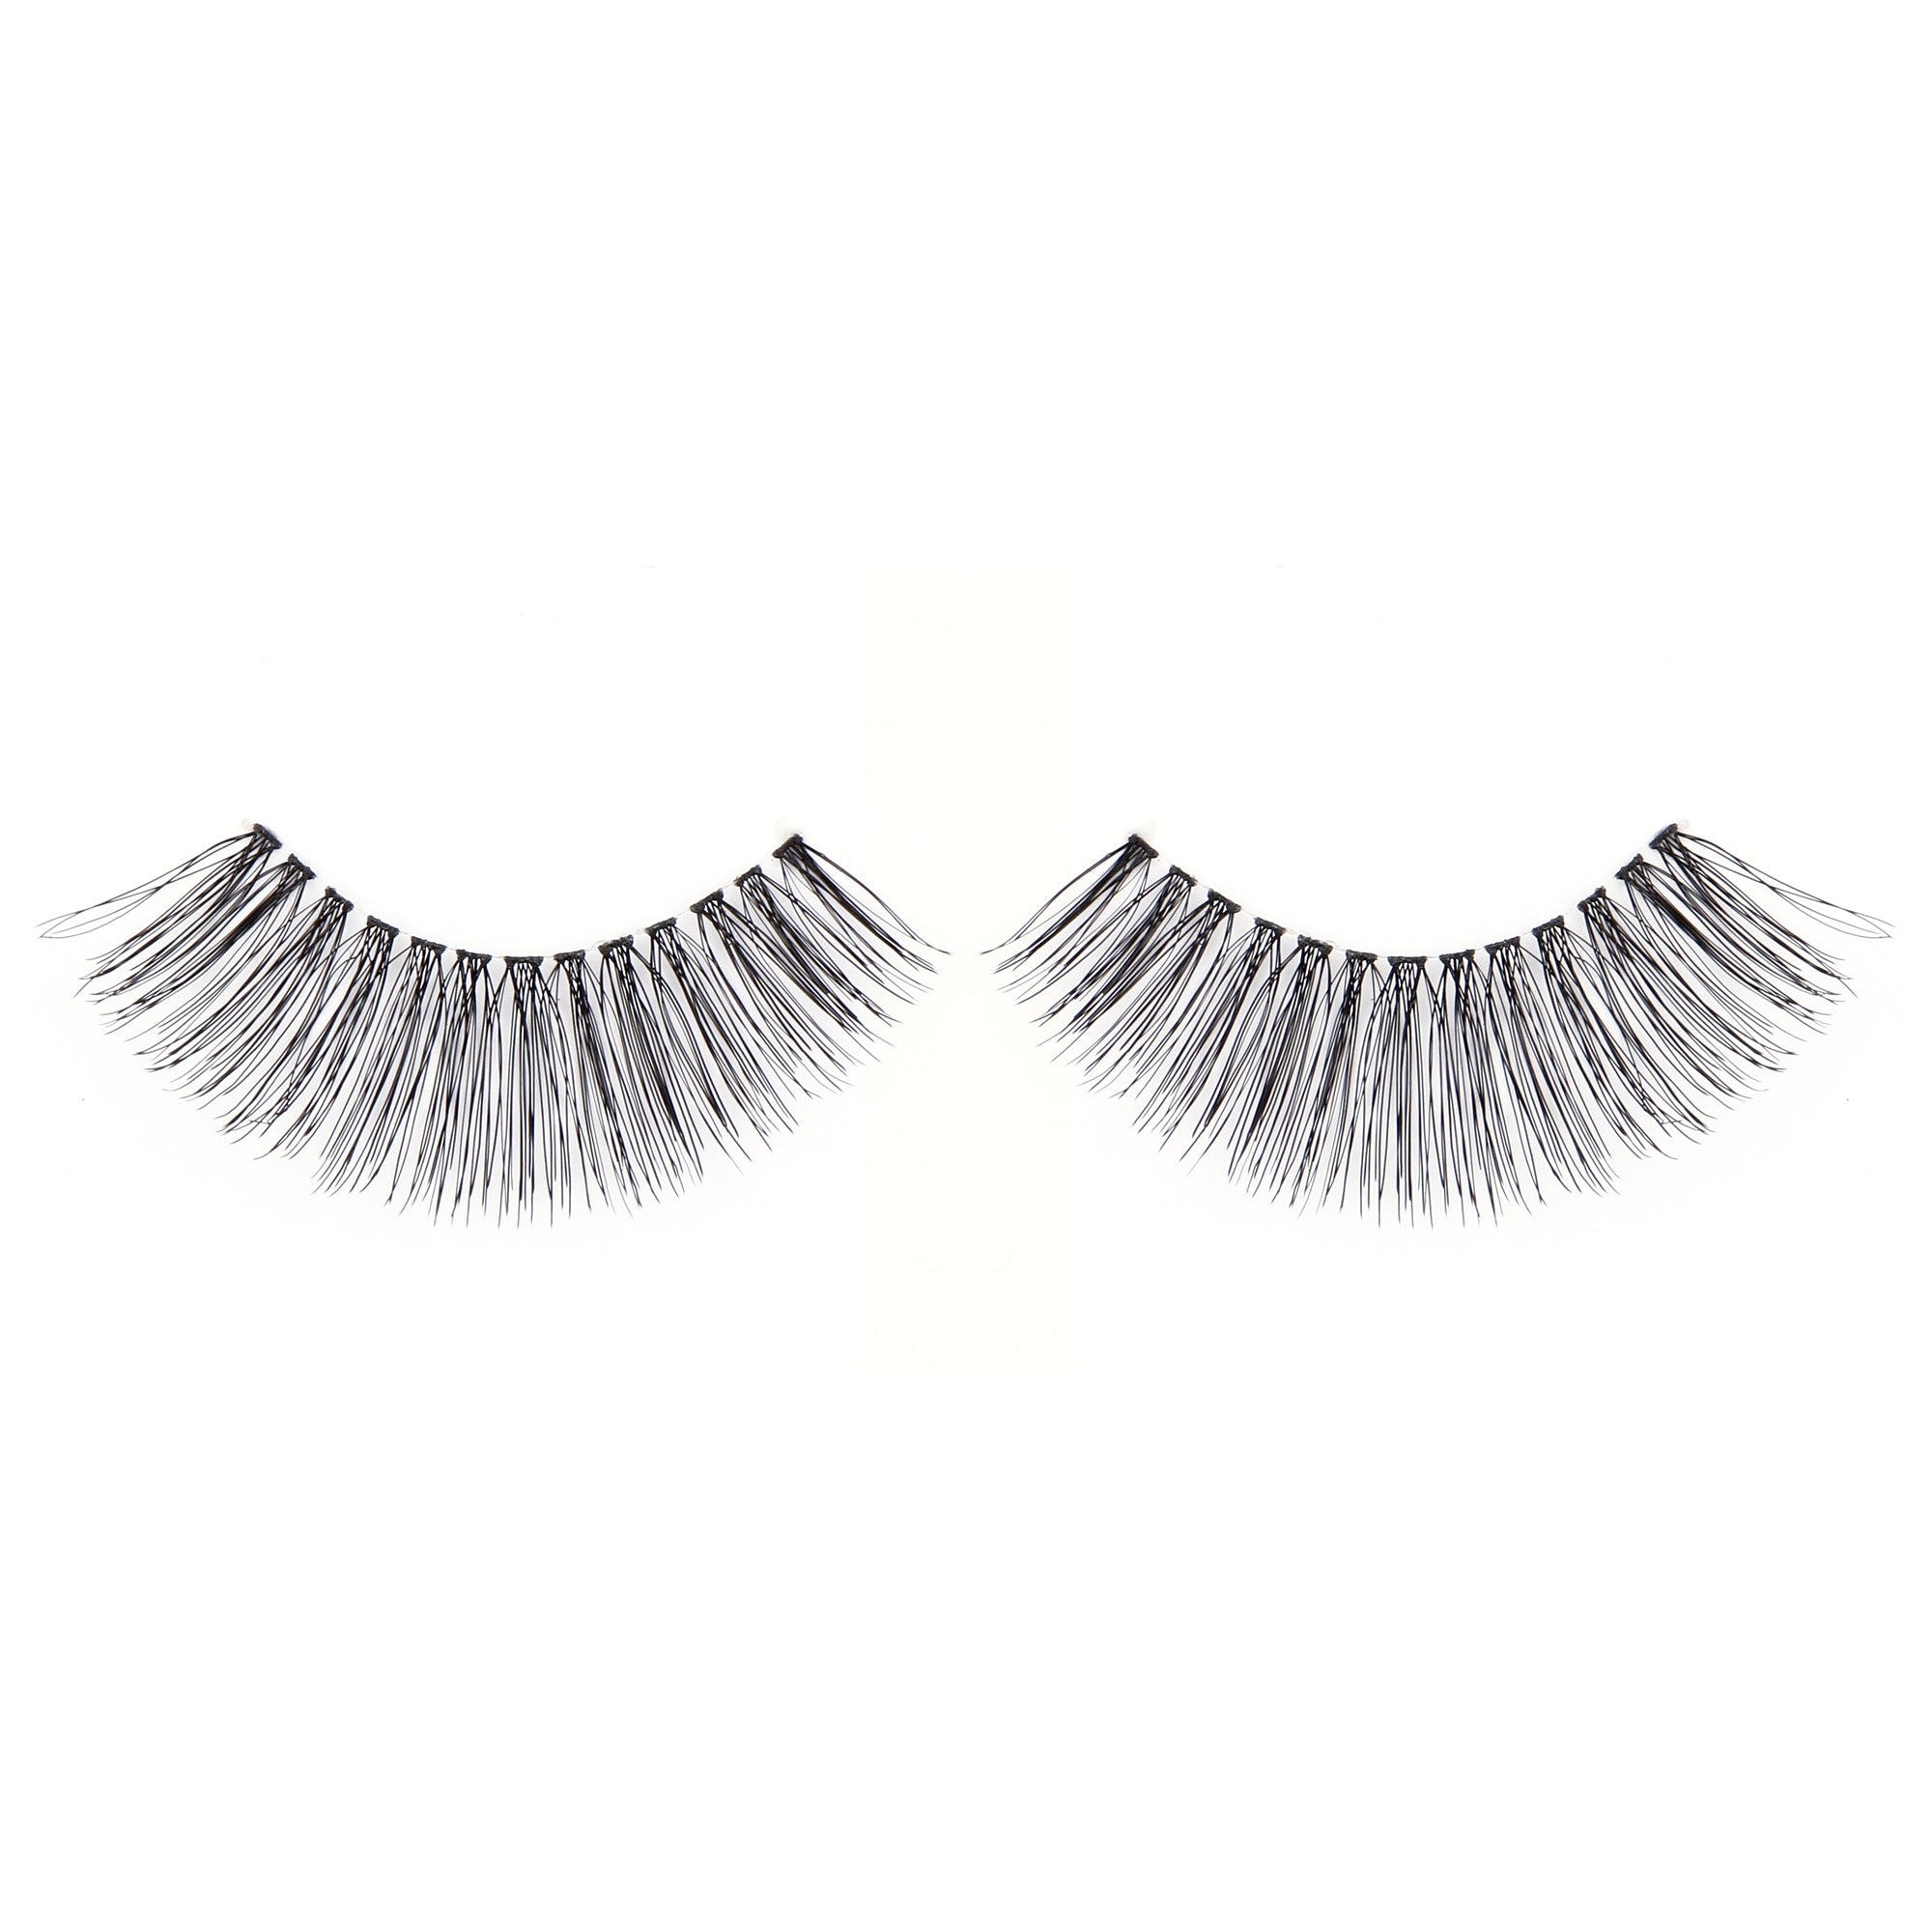 False Lashes - Professional Tapered ends lashes 118T. SIMONE - Recommended by Professional Makeup Artists.